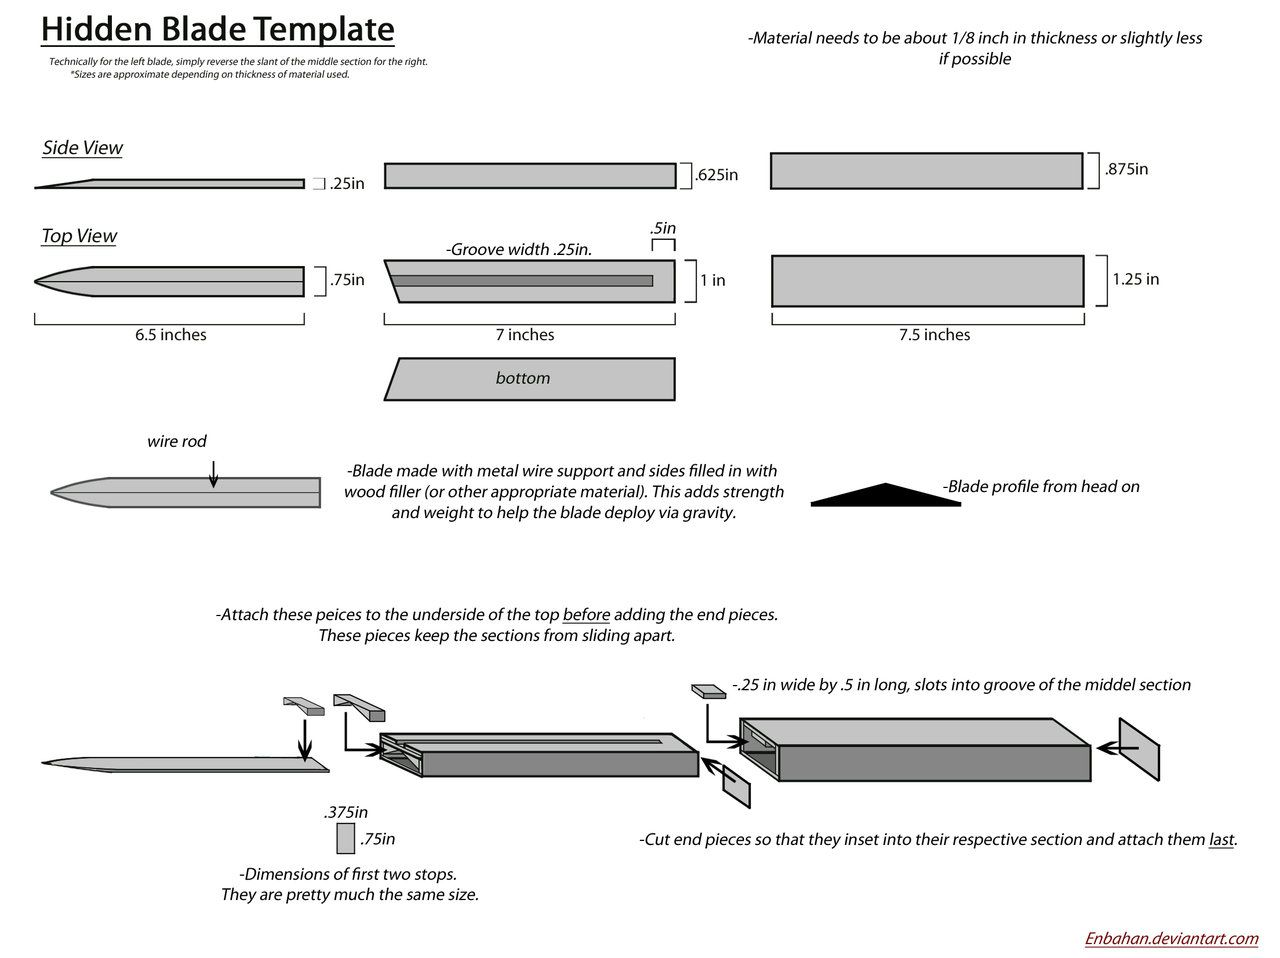 Hidden Blade Template By Enbahan On Deviantart  Costume Design